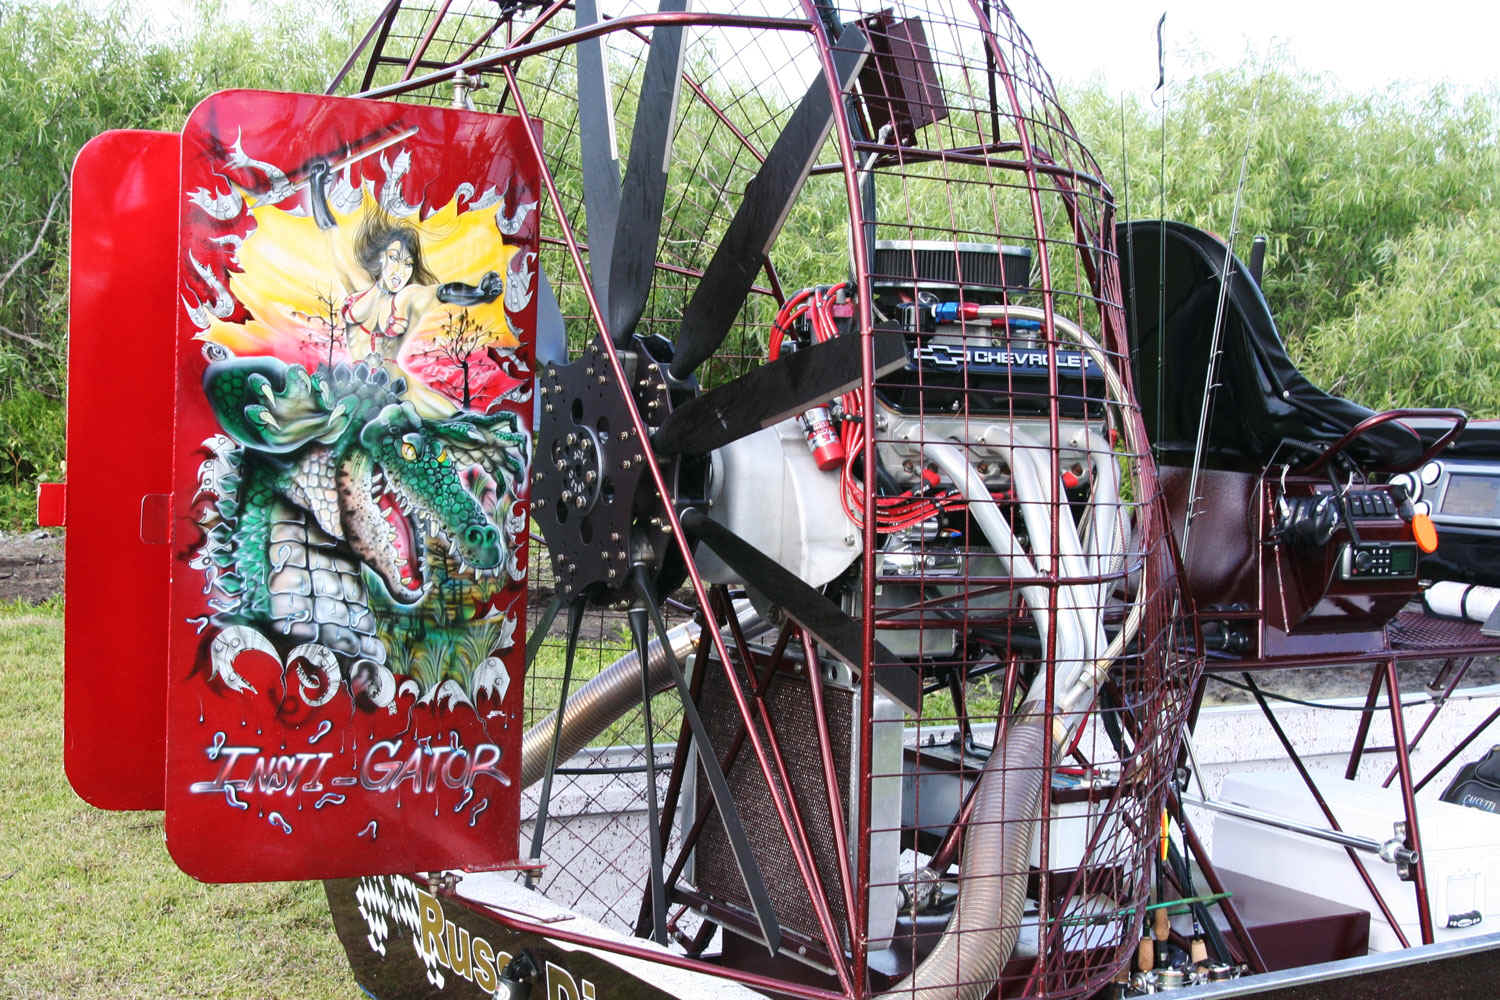 Airboat with Warp Drive Propeller